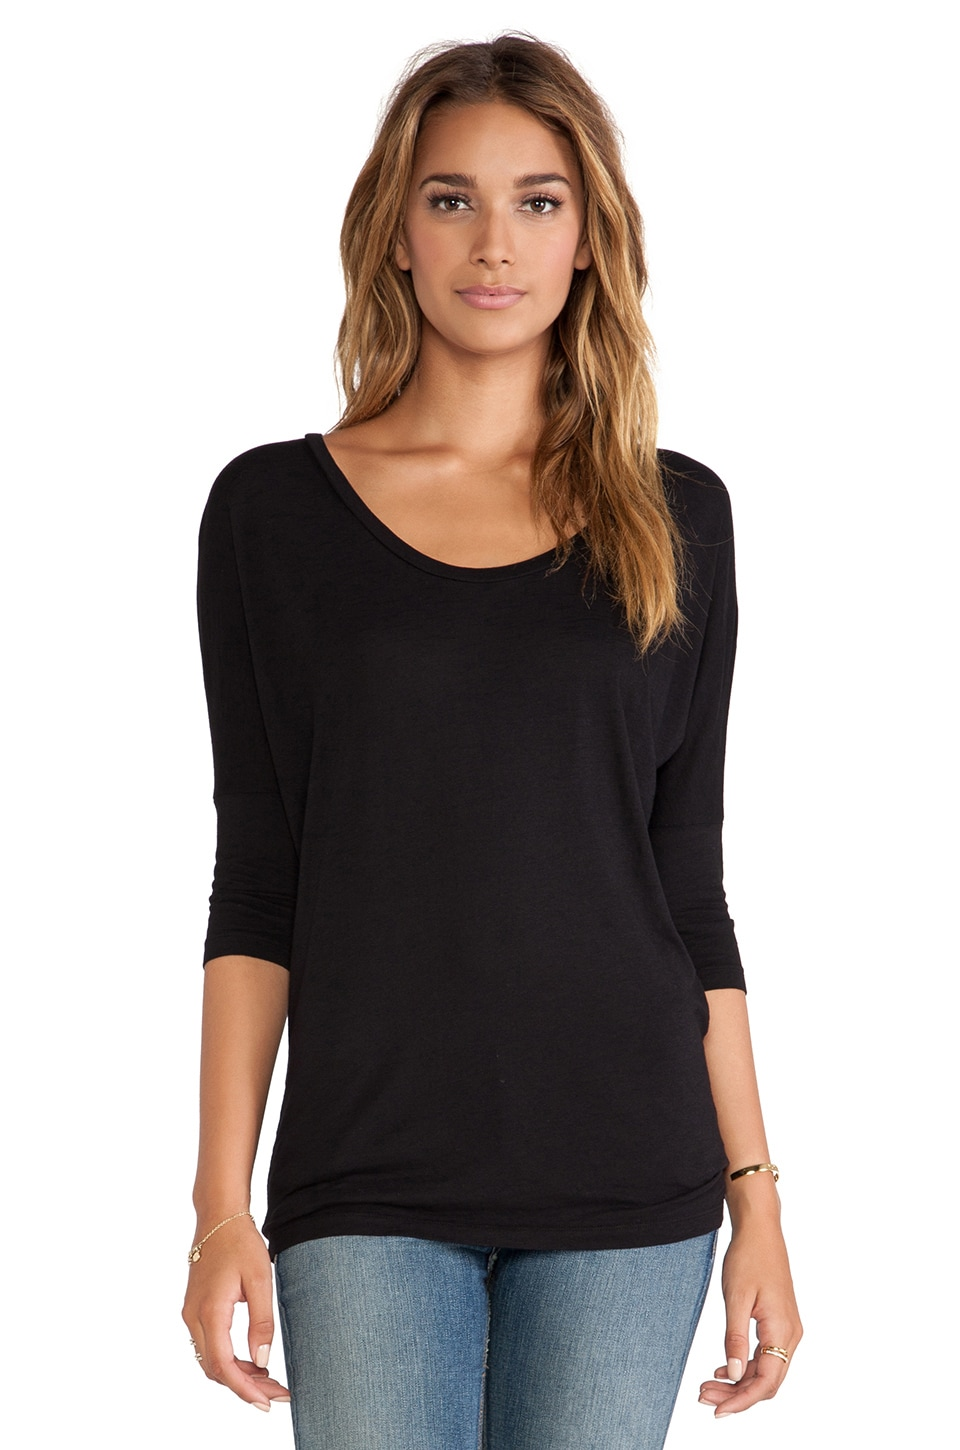 Bobi Slub Dolman Long Sleeve Tee in Black